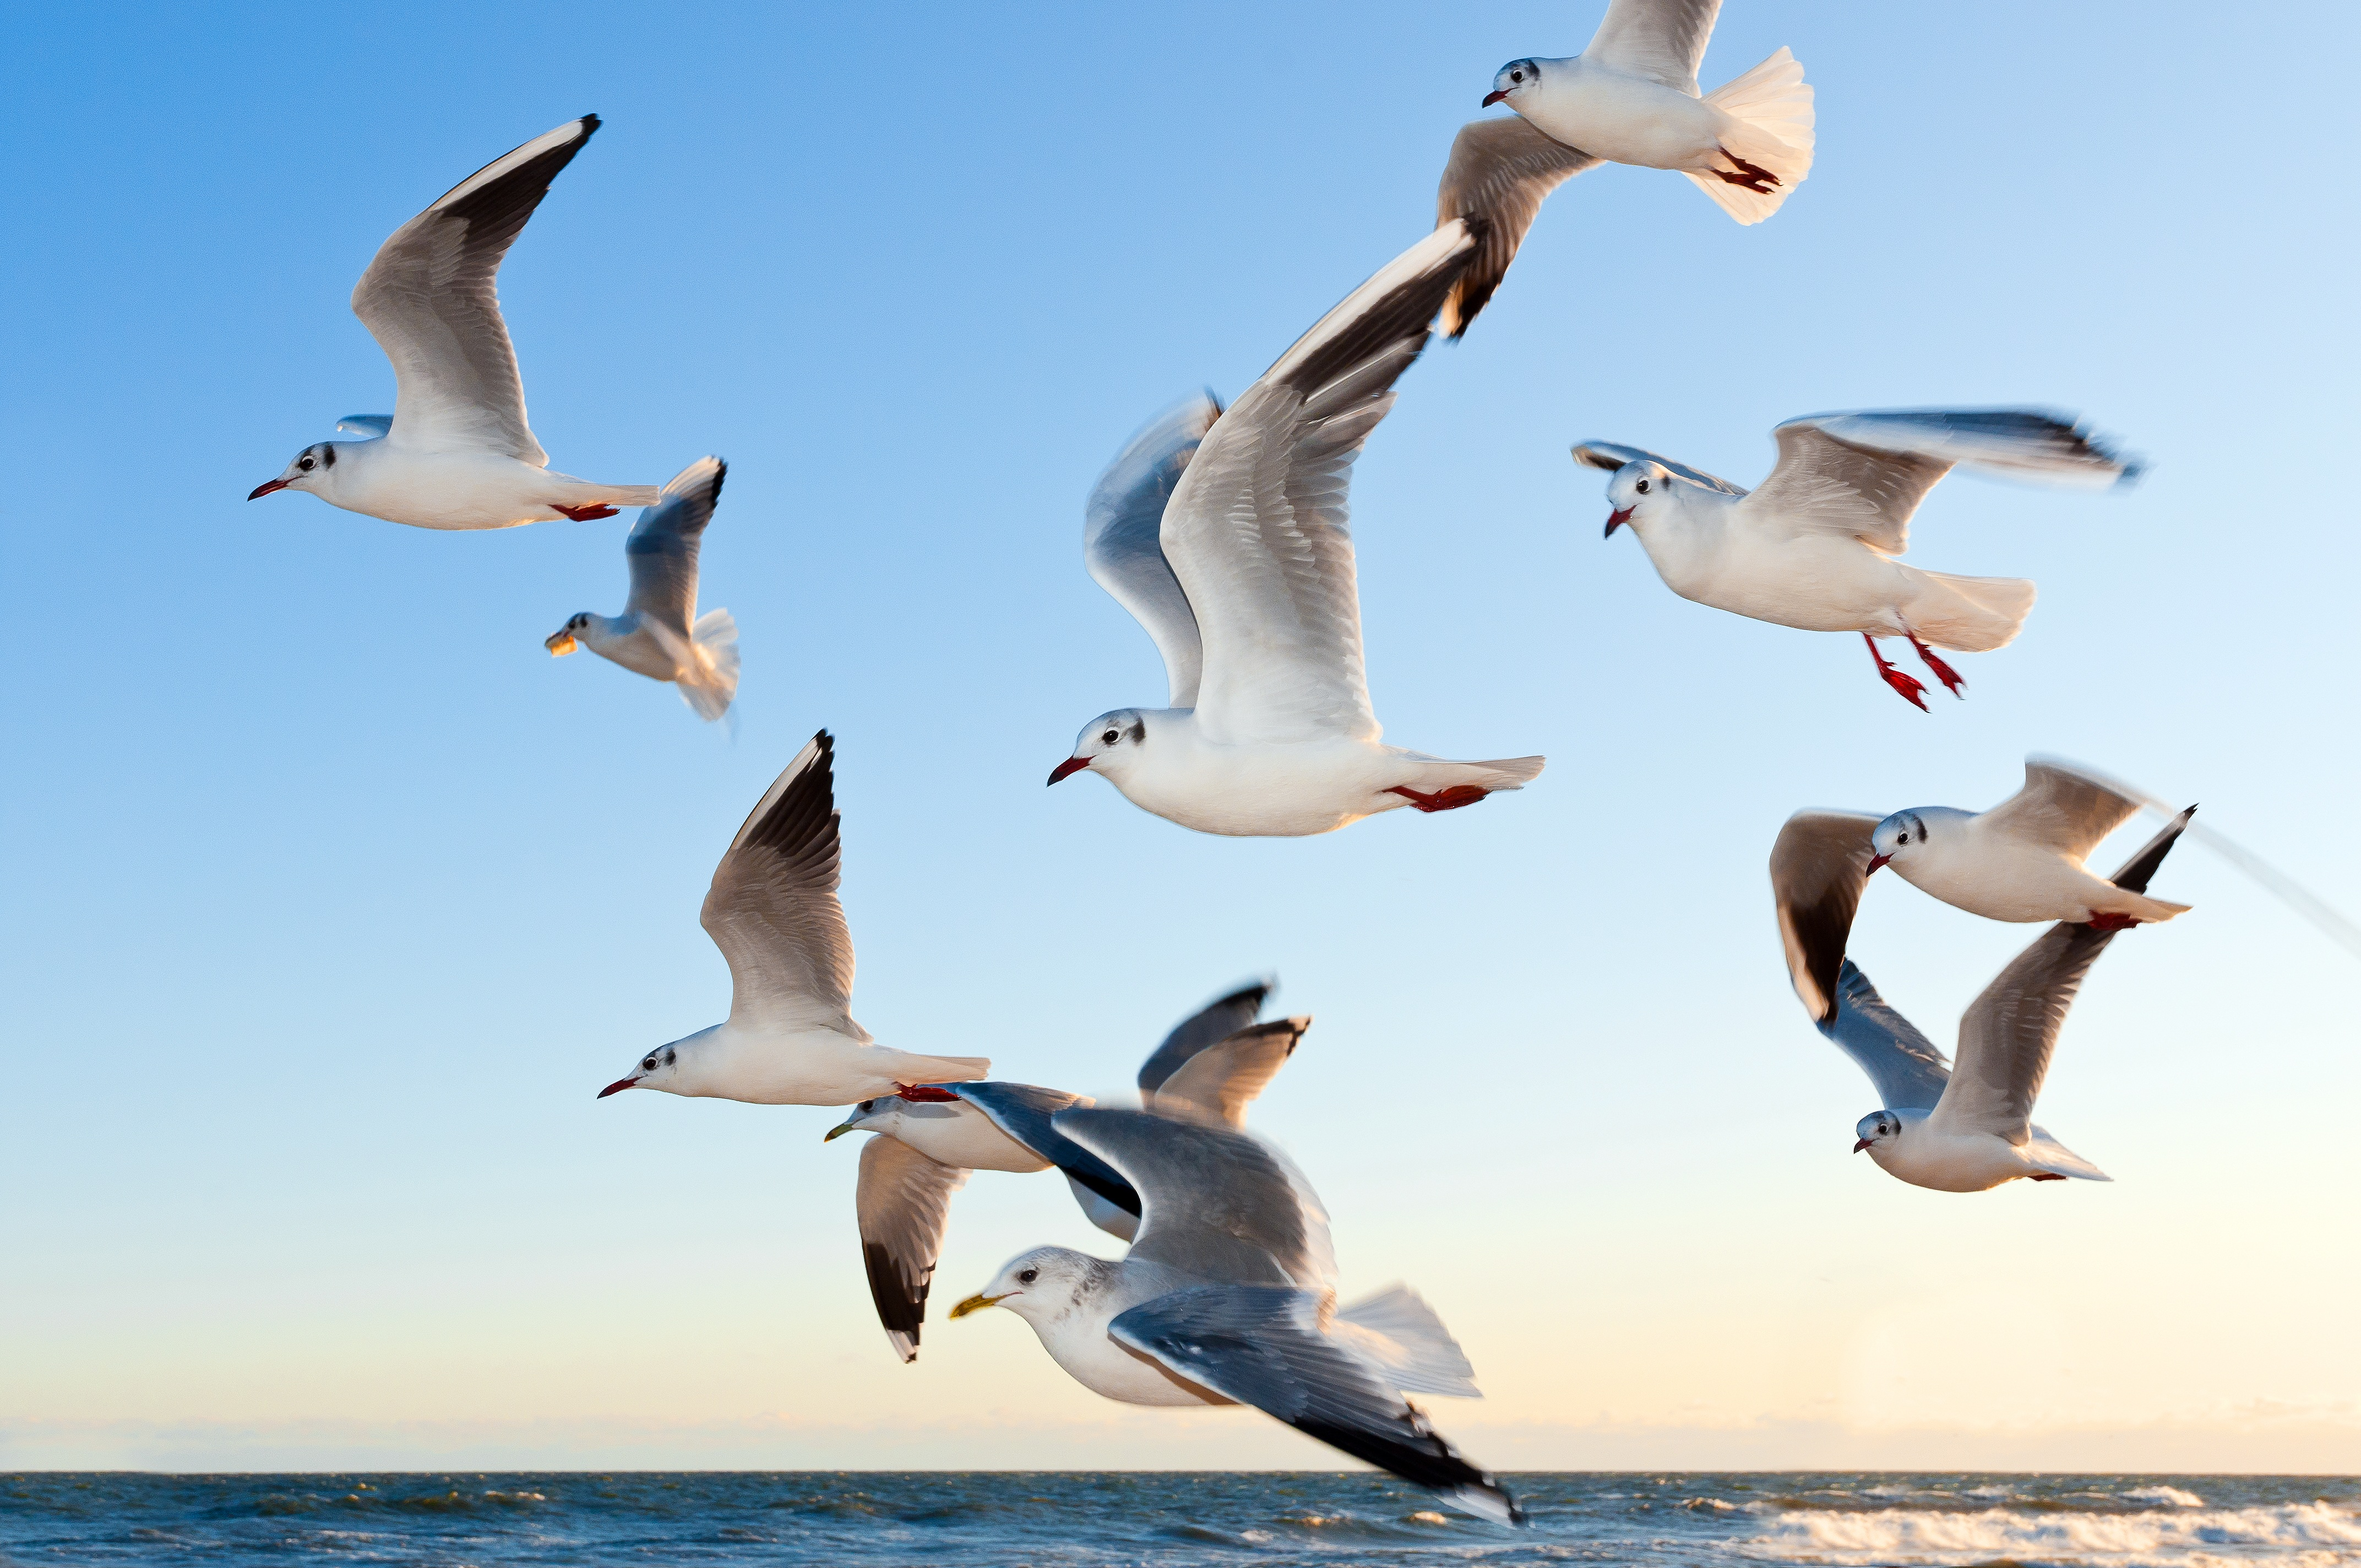 149309 download wallpaper Animals, Birds, Sea, Seagulls, Flight screensavers and pictures for free